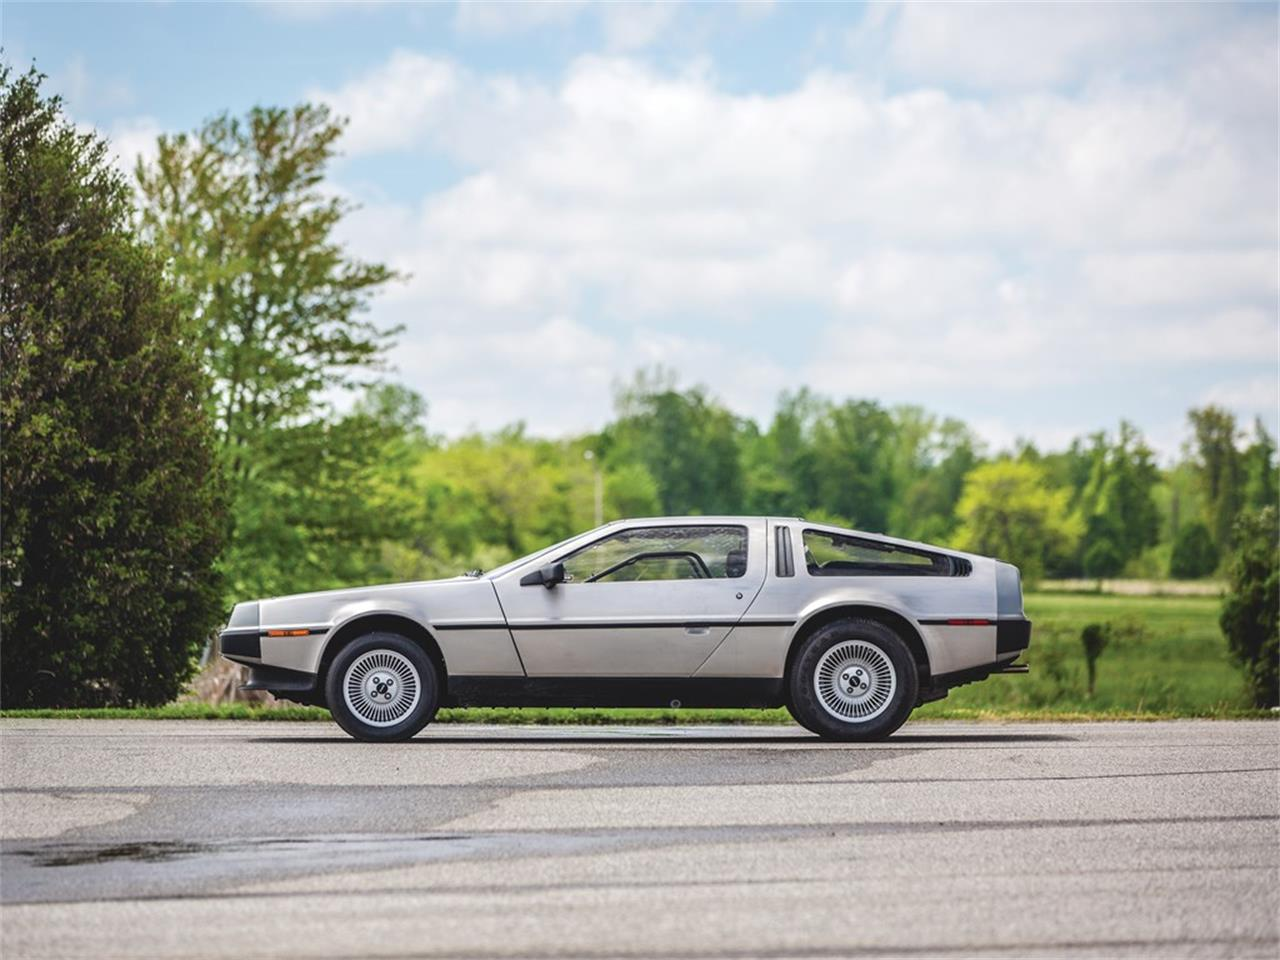 Large Picture of 1983 DeLorean DMC-12 located in Auburn Indiana - Q5JH